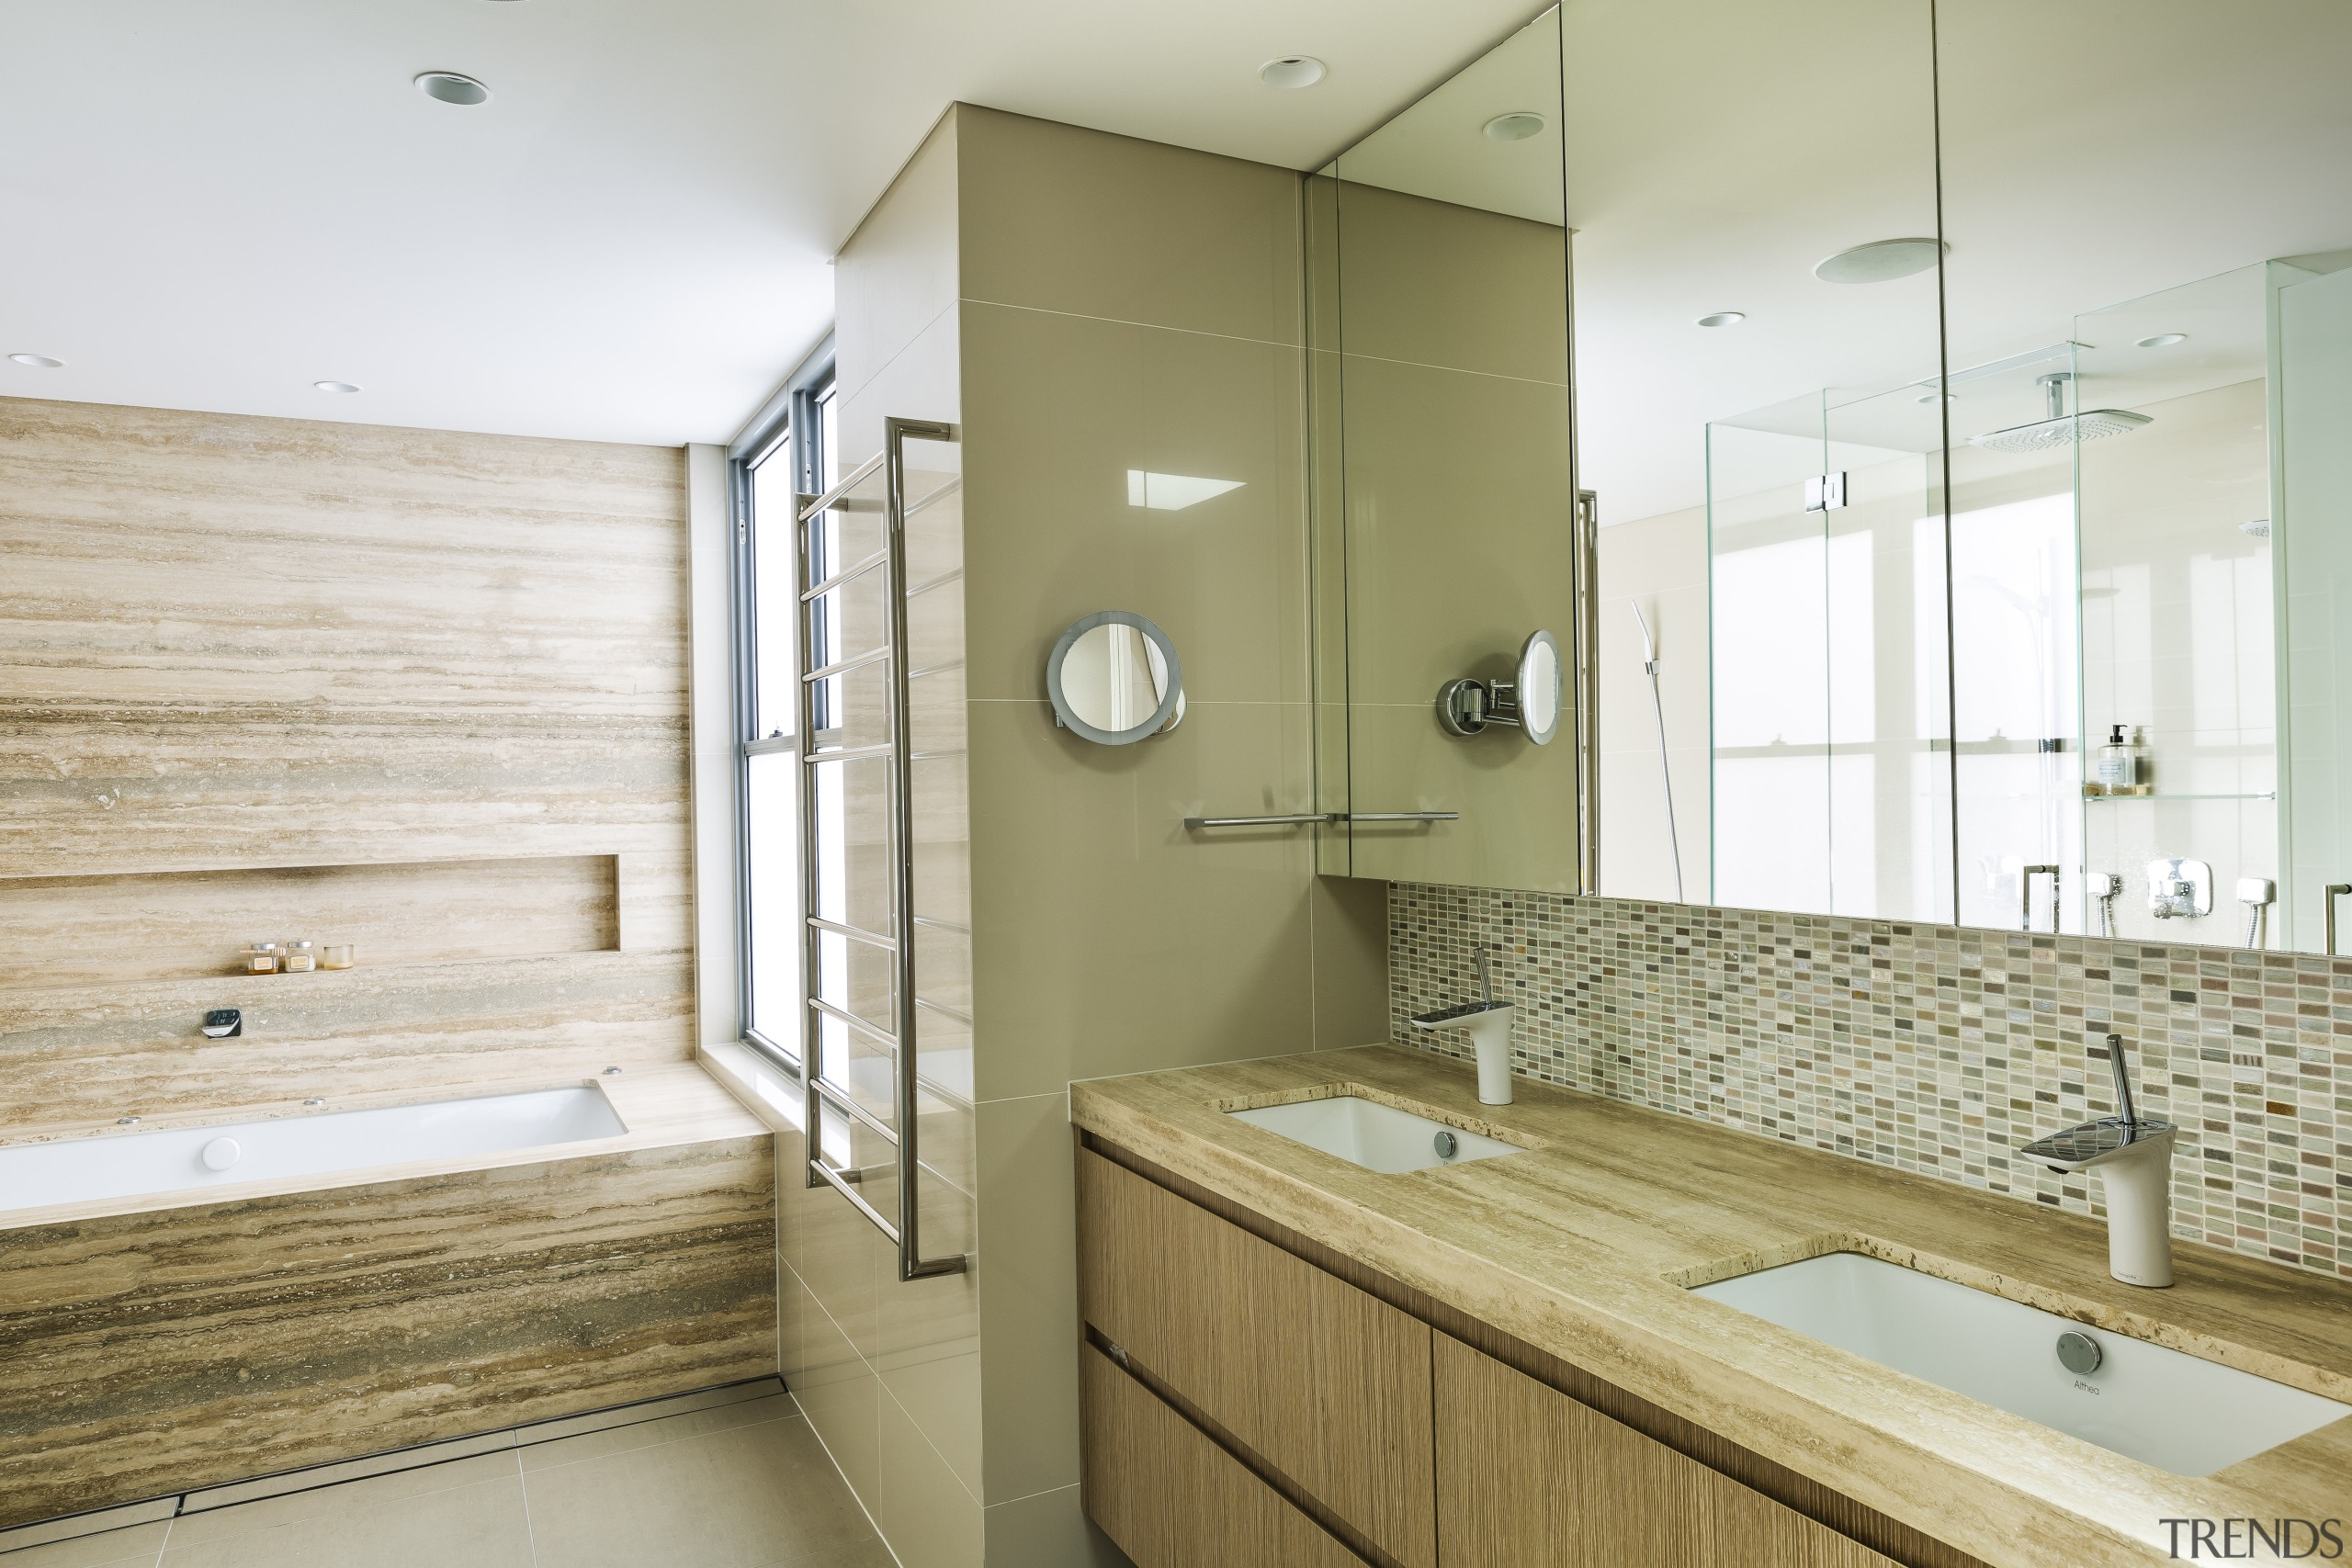 The ensuite cabinetry in this master suite continues architecture, bathroom, home, bathroom design, white, master suite, timber cabinetry, wood, timber, travertine, Giles & Tribe Architecture